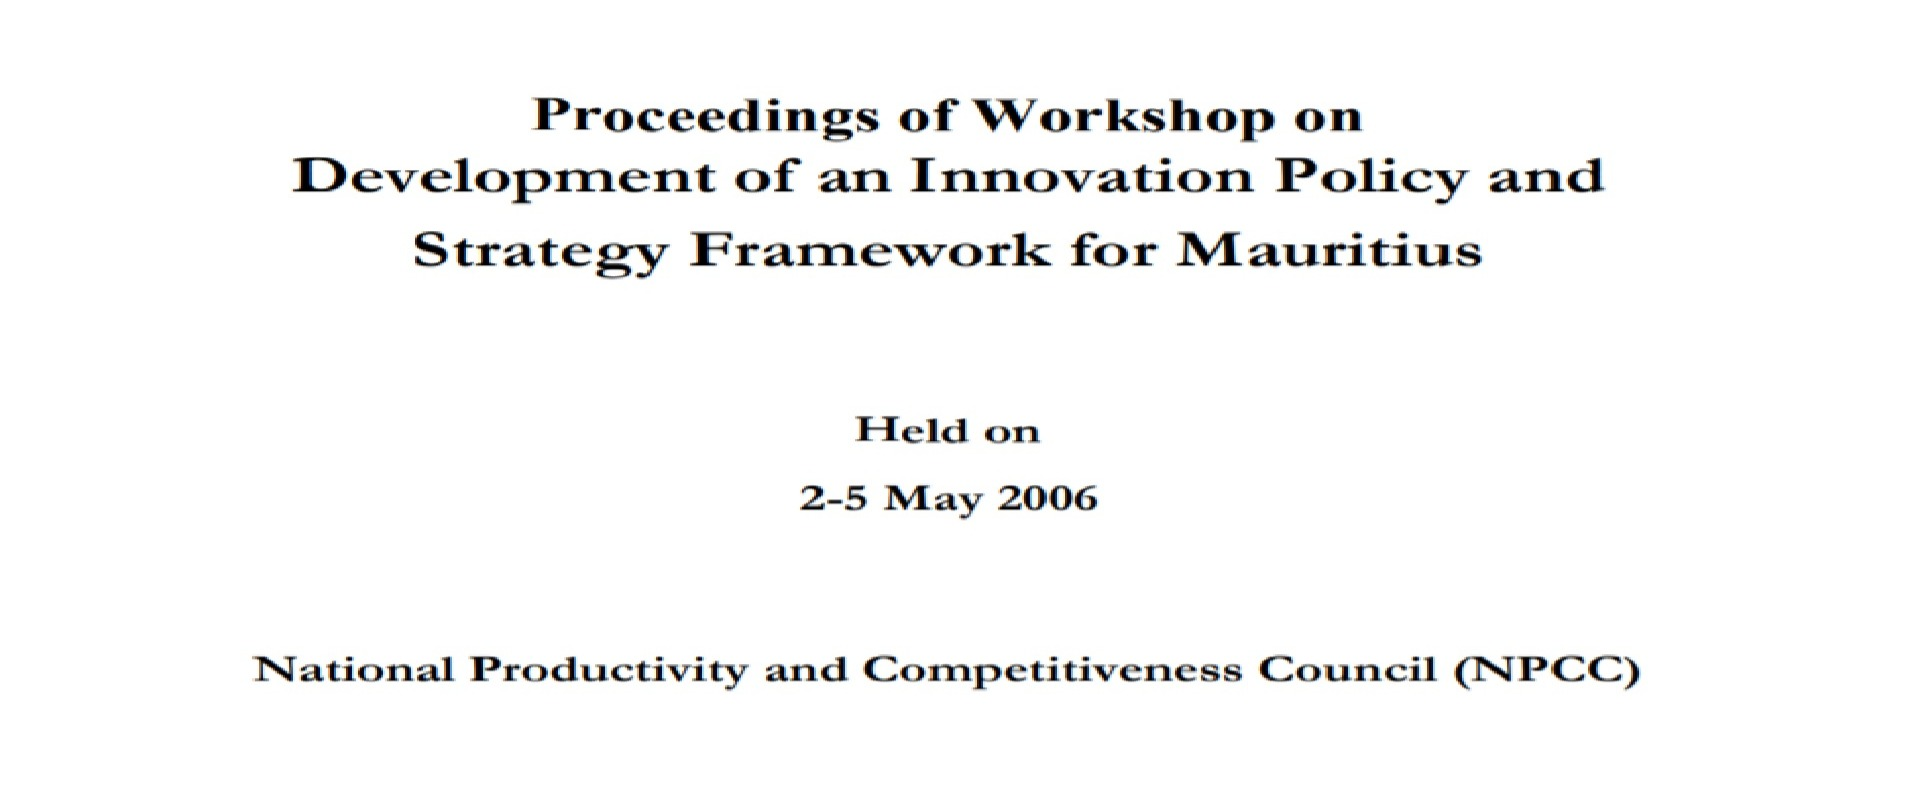 Development of an Innovation Policy and Strategy Framework